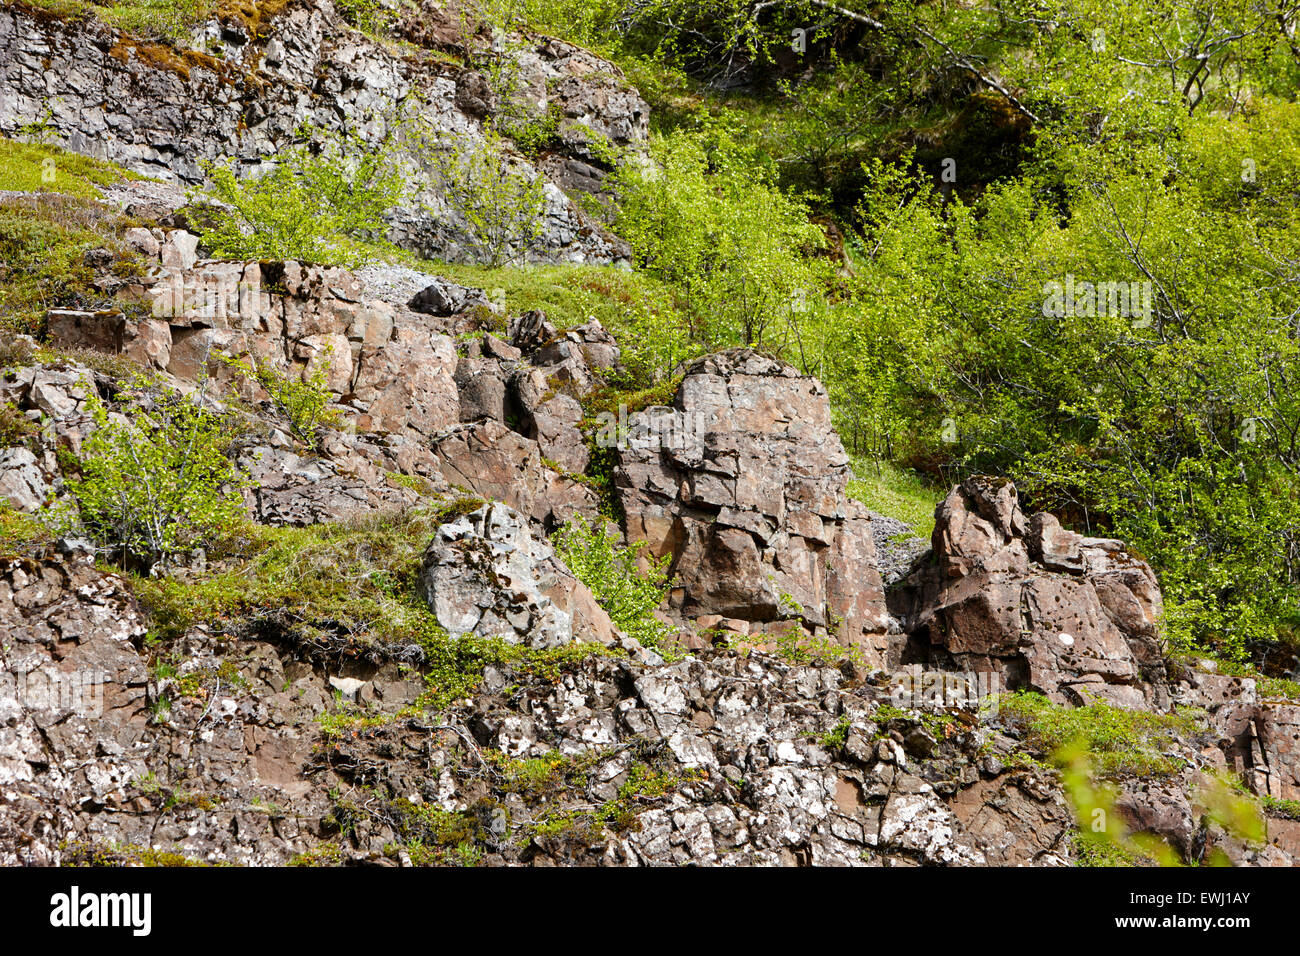 volcanic rock strata and dikes in basalt in hillside Iceland - Stock Image